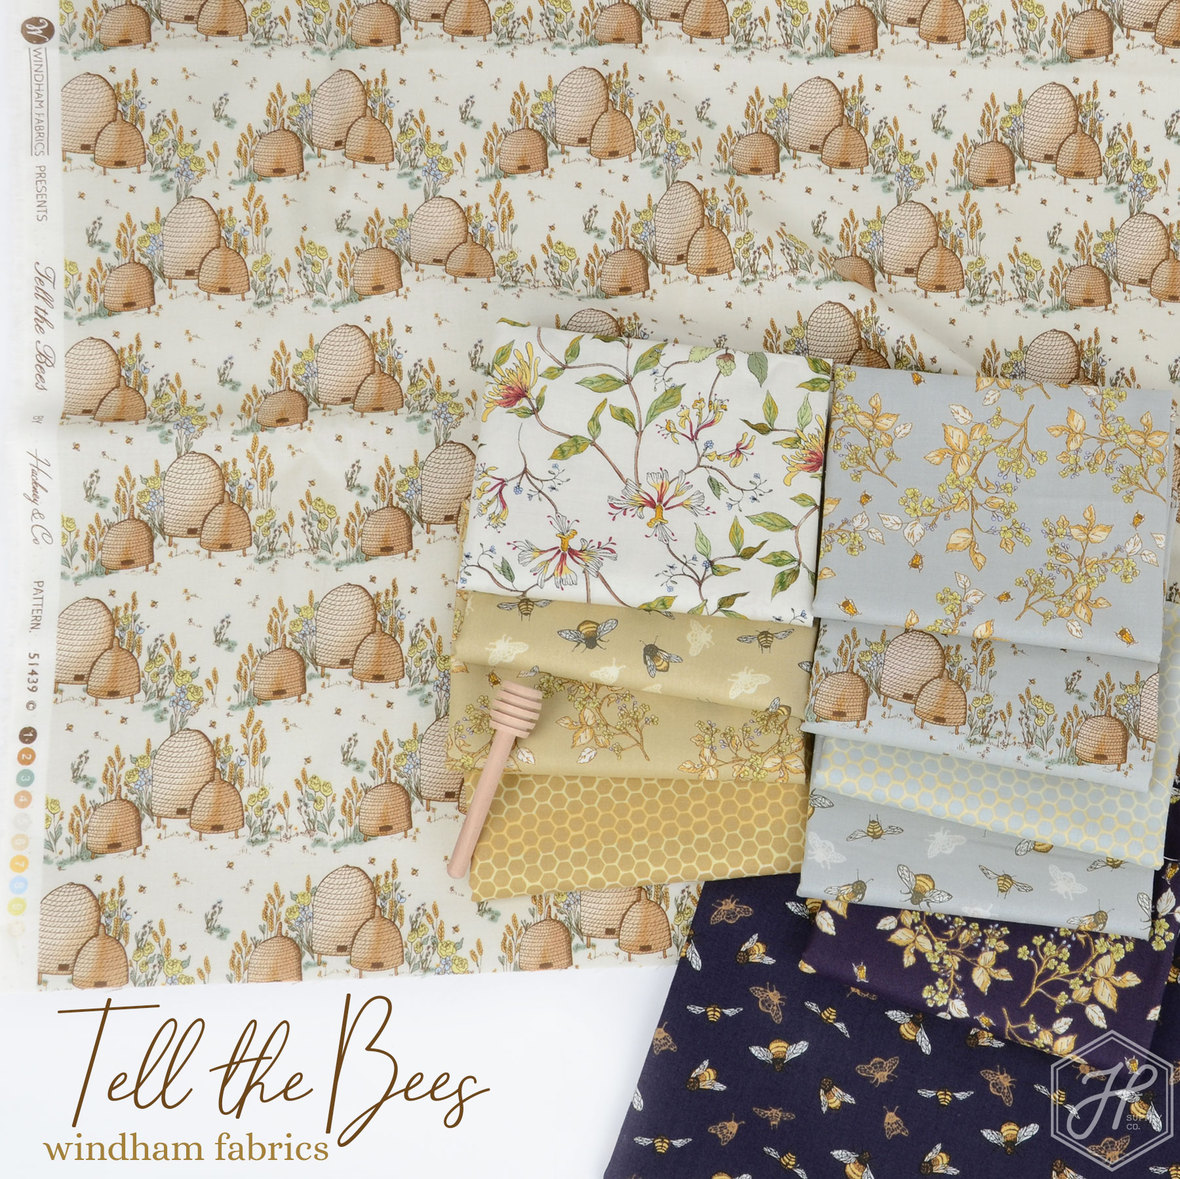 Tell-the-Bees-Fabric-Poster-WIndham-fabrics-at-Hawthorne-Supply-Co